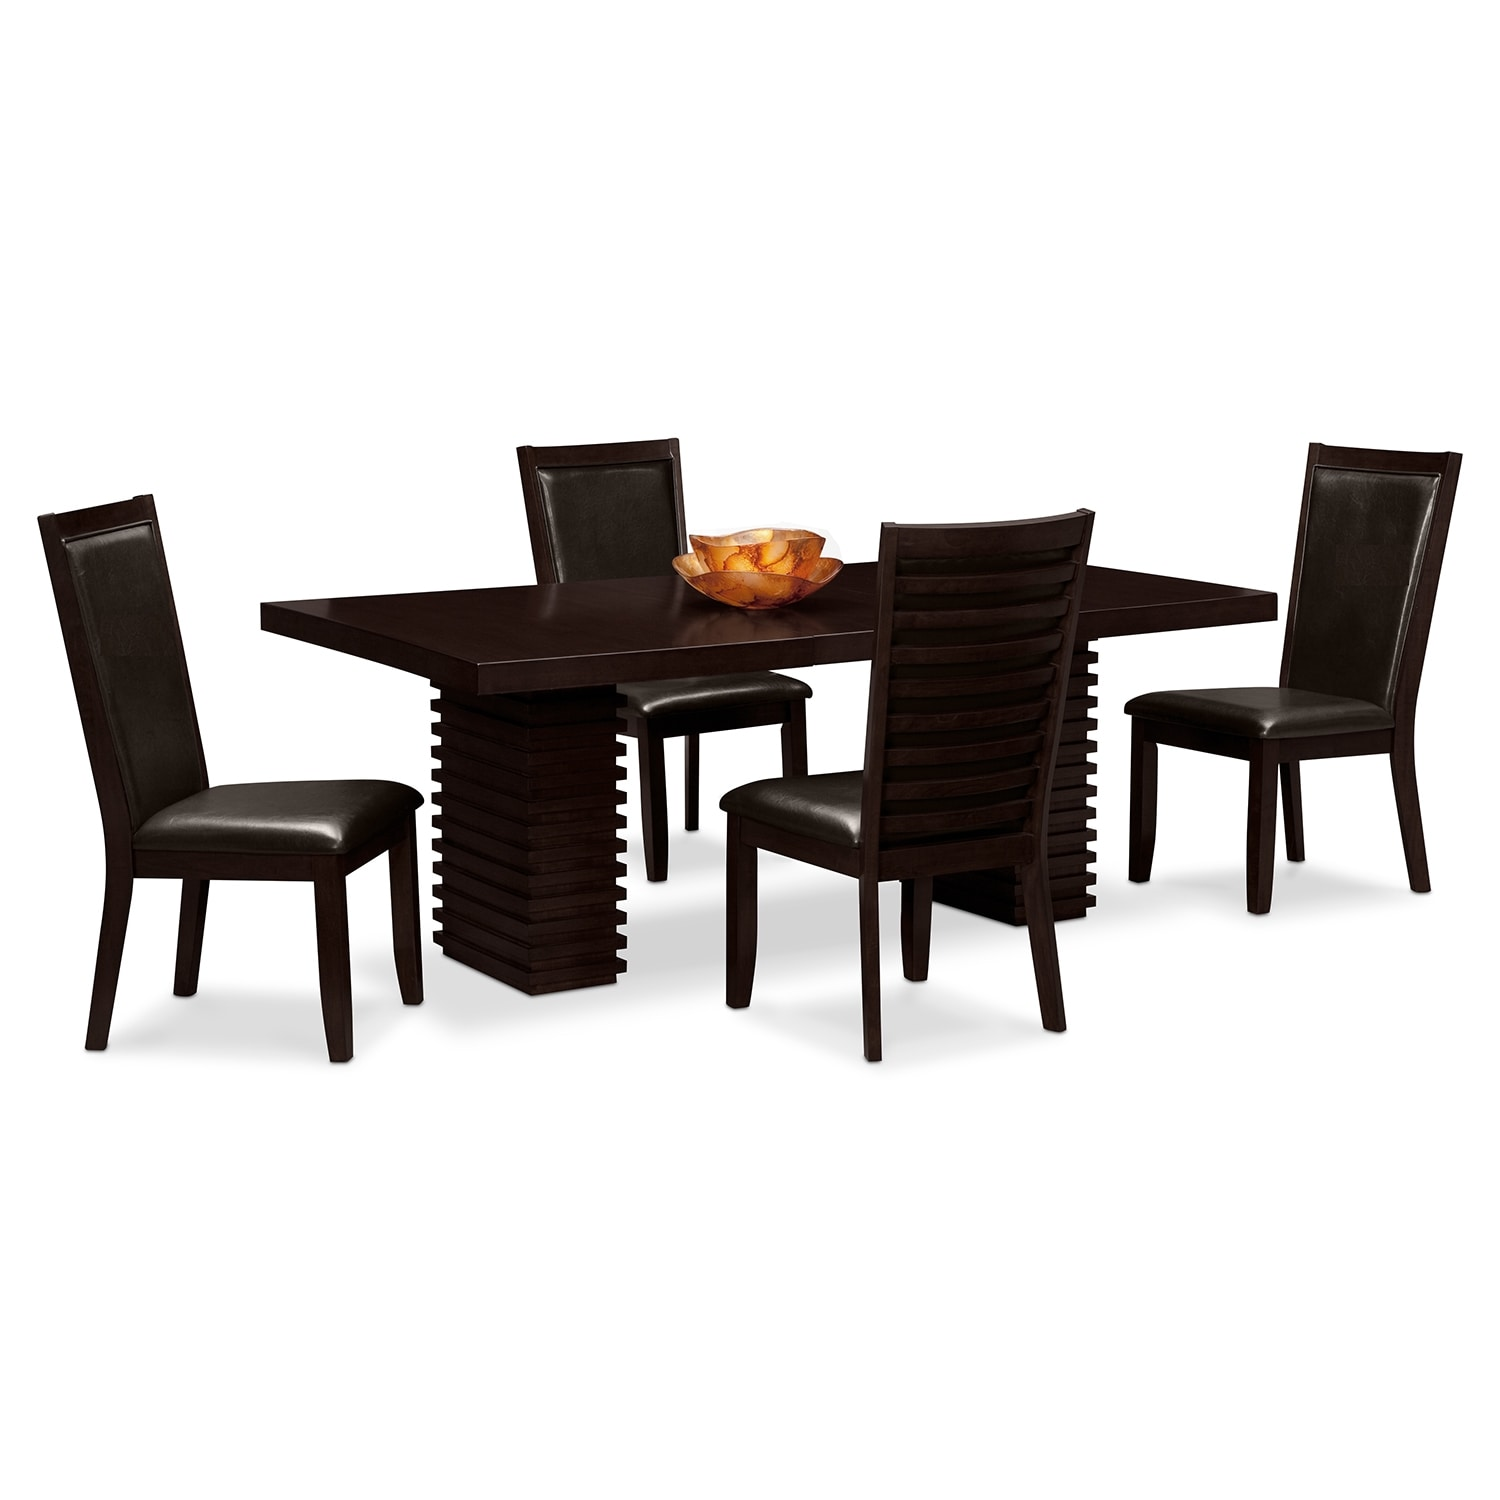 Dining Room Furniture - Paragon II 5 Pc. Dinette